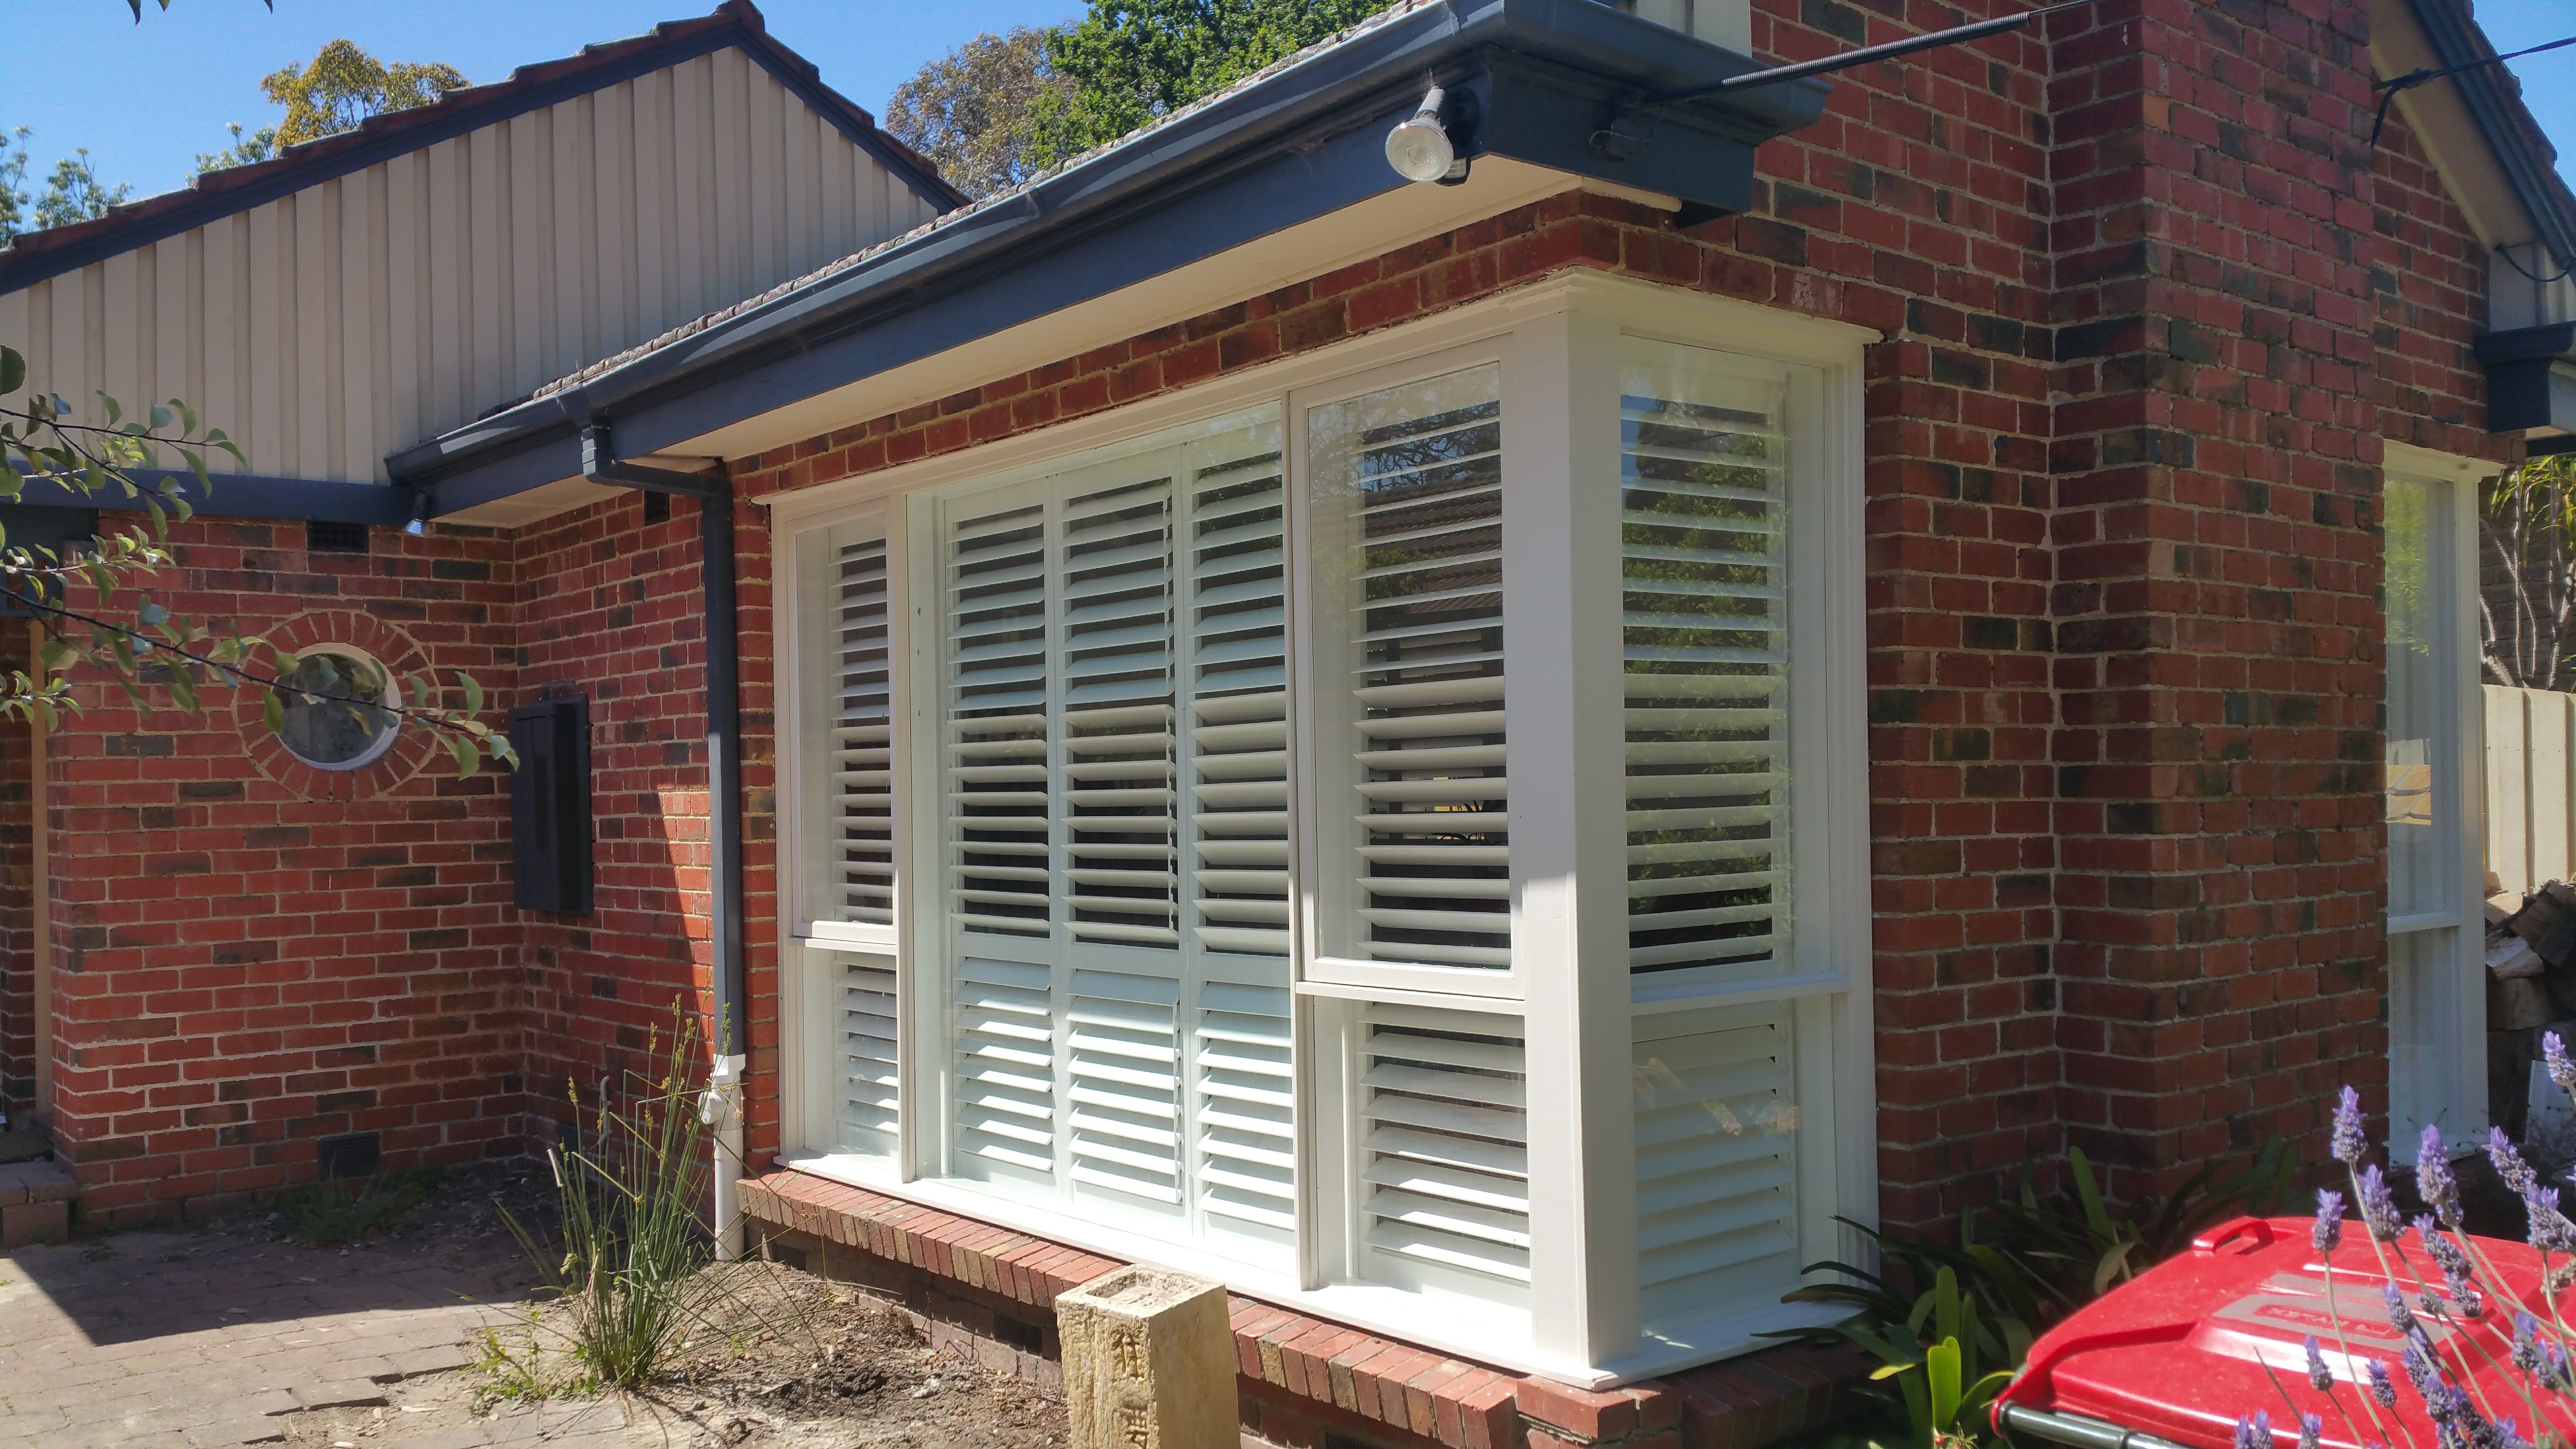 Top 5 Reasons To Chose Raised Panel Shutters in Your Home